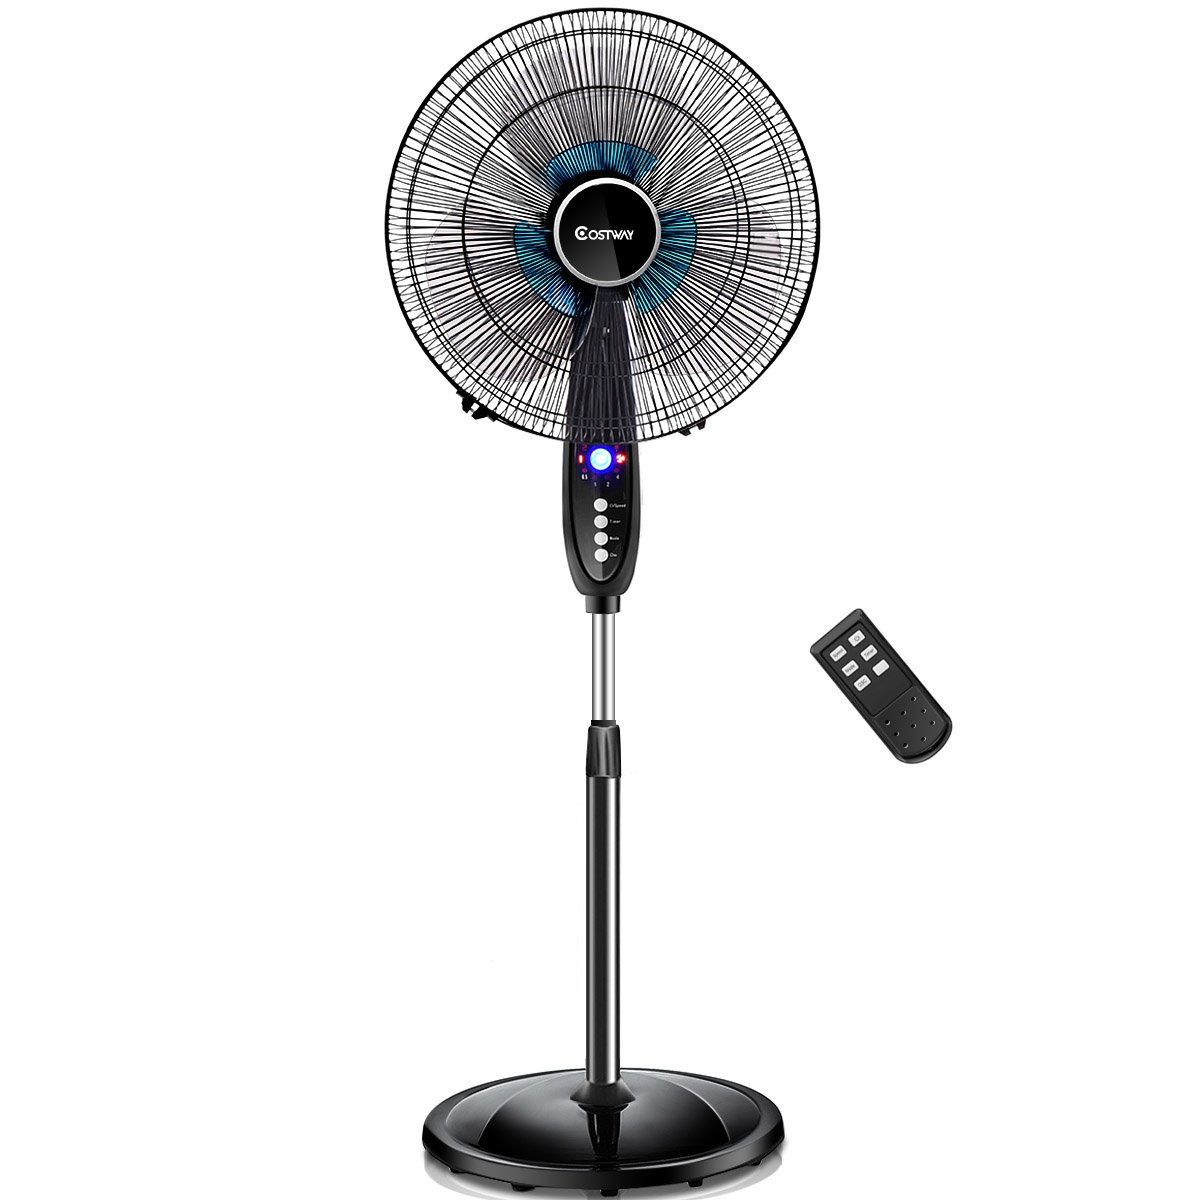 "COSTWAY 16"" Adjustable Pedestal Fan Black Friday Deals 2020"